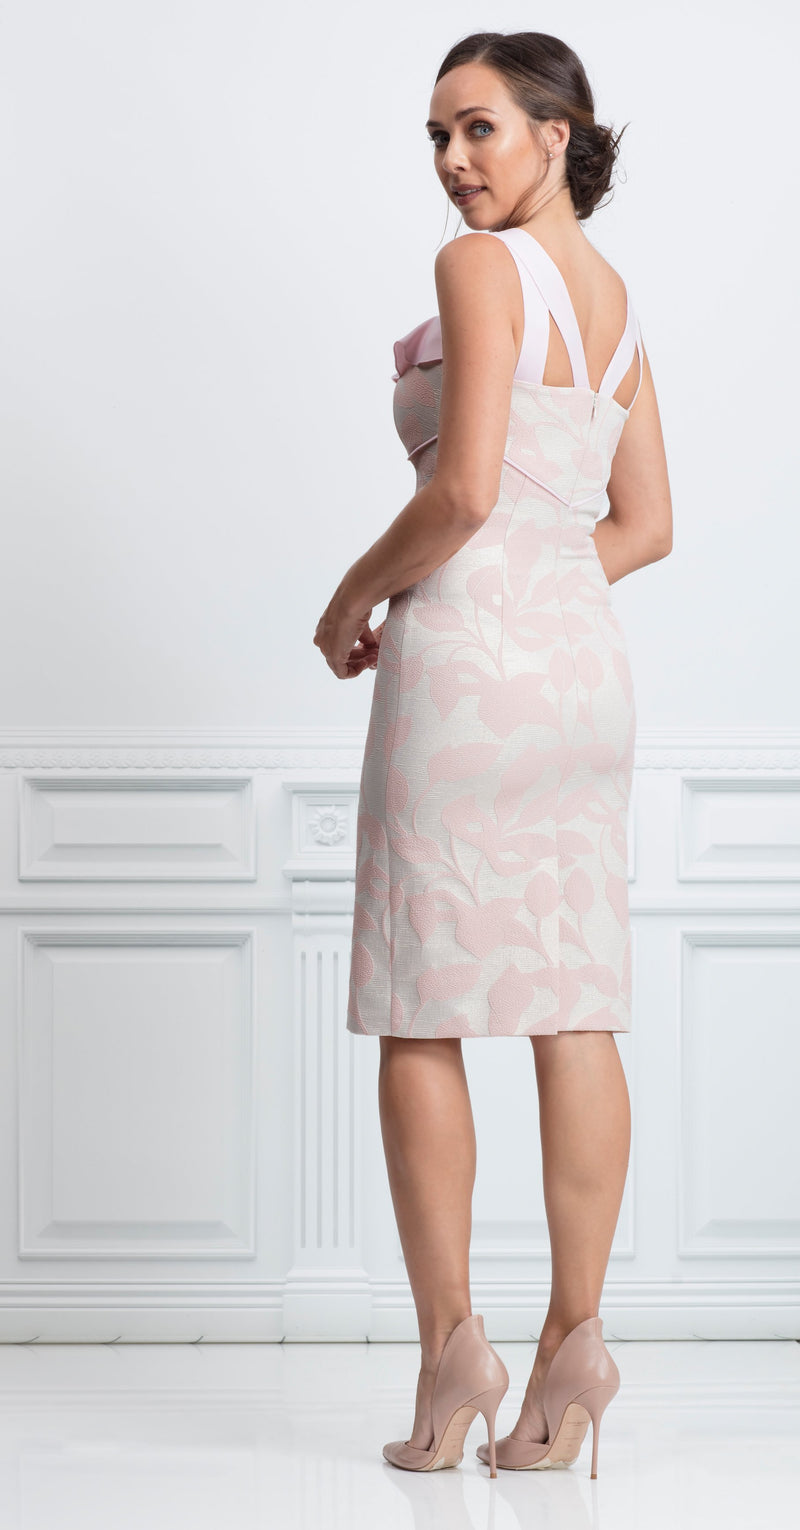 Andalusia Dress in pale pink metallic jacquard